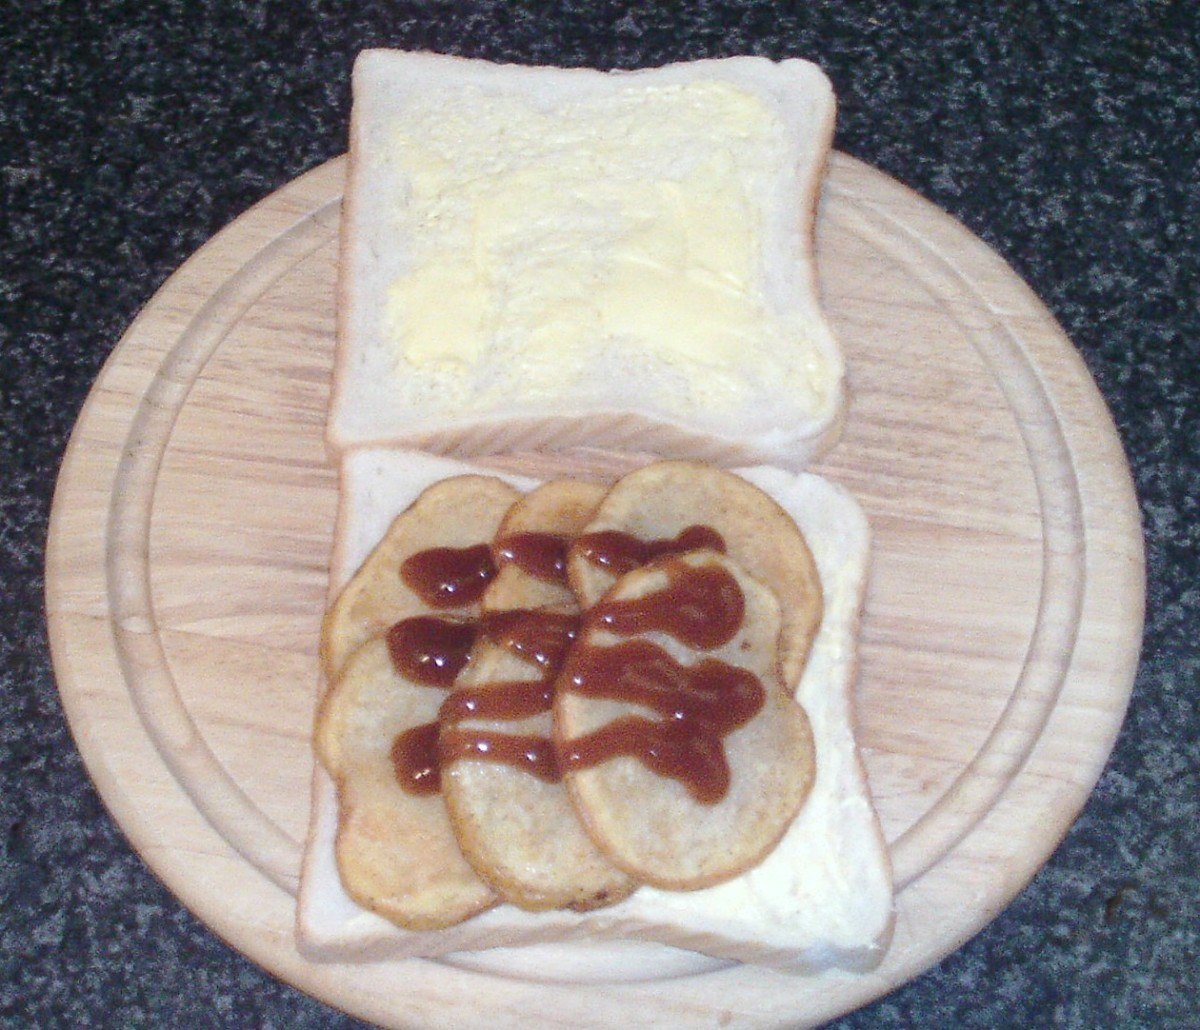 Brown sauce is drizzled over potatoes before sandwich is closed over with second slice of bread